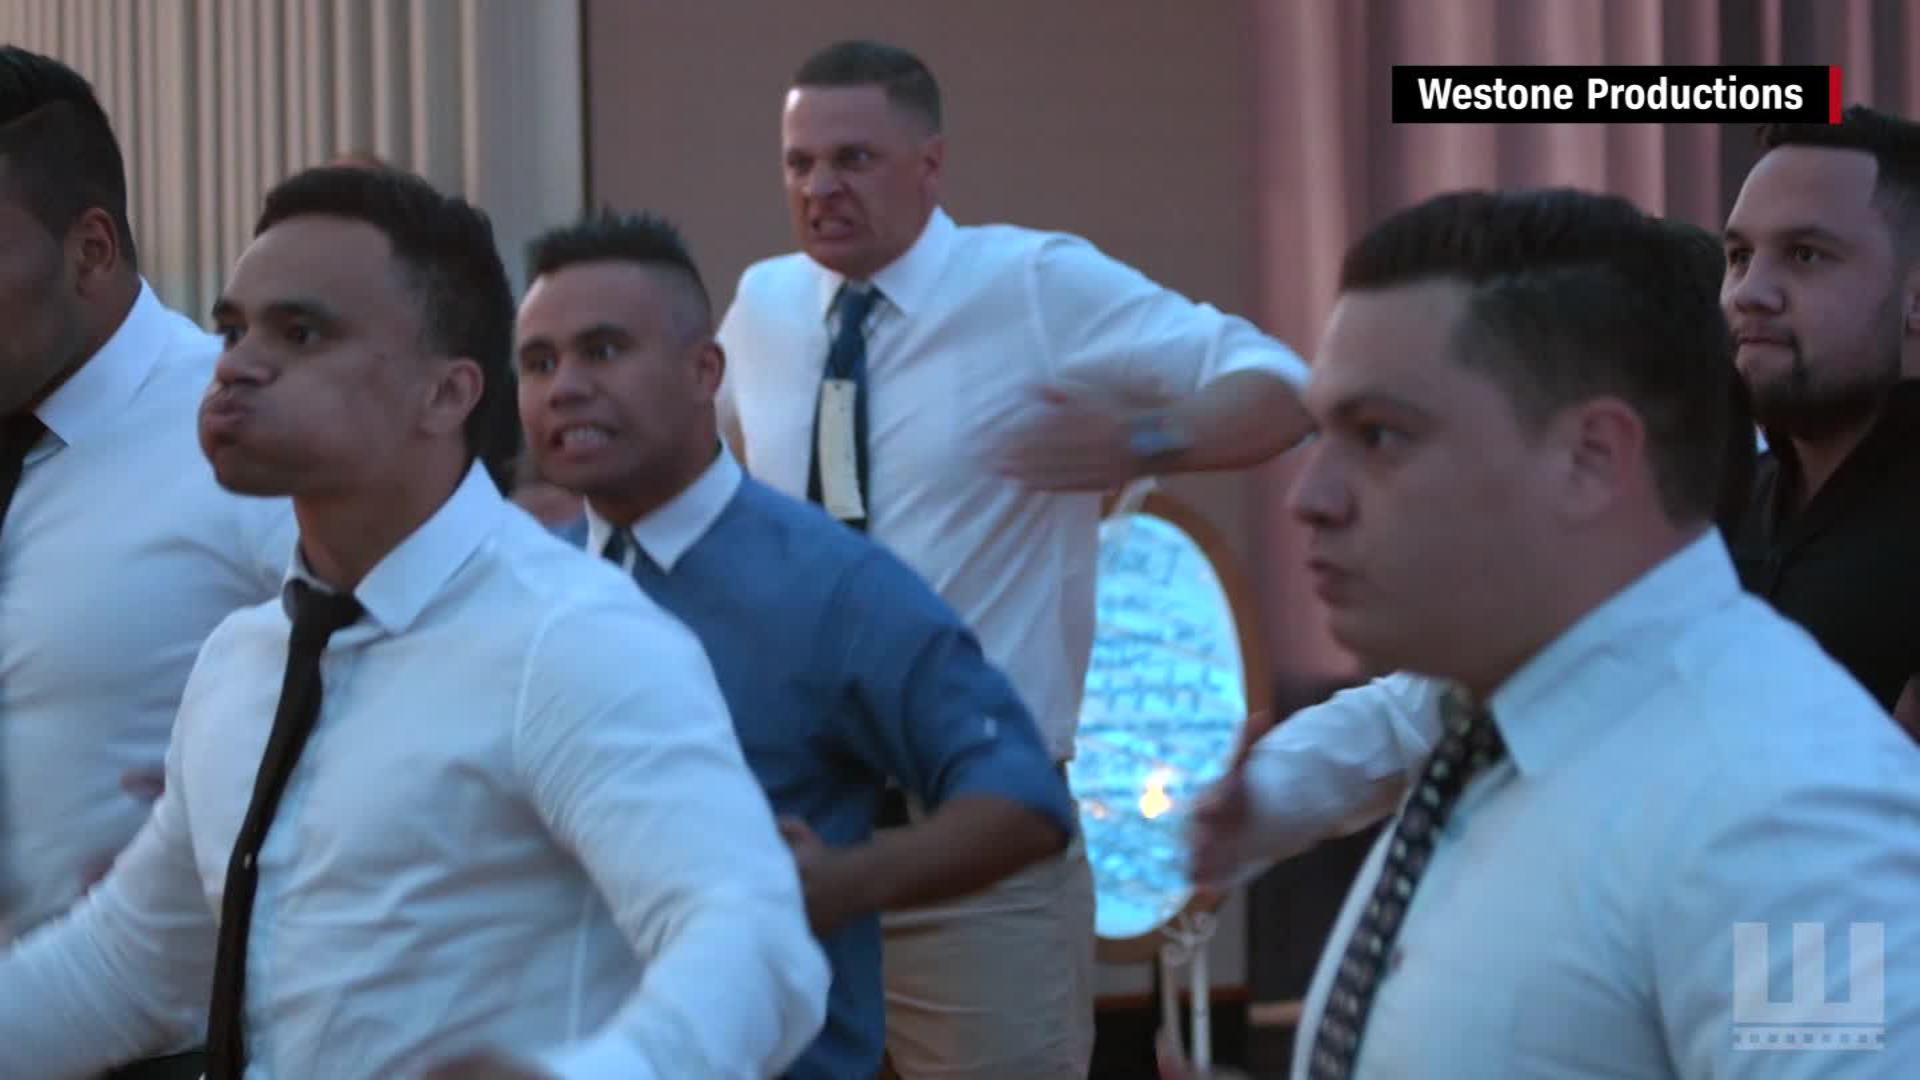 Wedding Guests Perform Traditional Haka To Honor Bride And Groom, Move Them To Tears Wedding Guests Perform Traditional Haka To Honor Bride And Groom, Move Them To Tears new picture